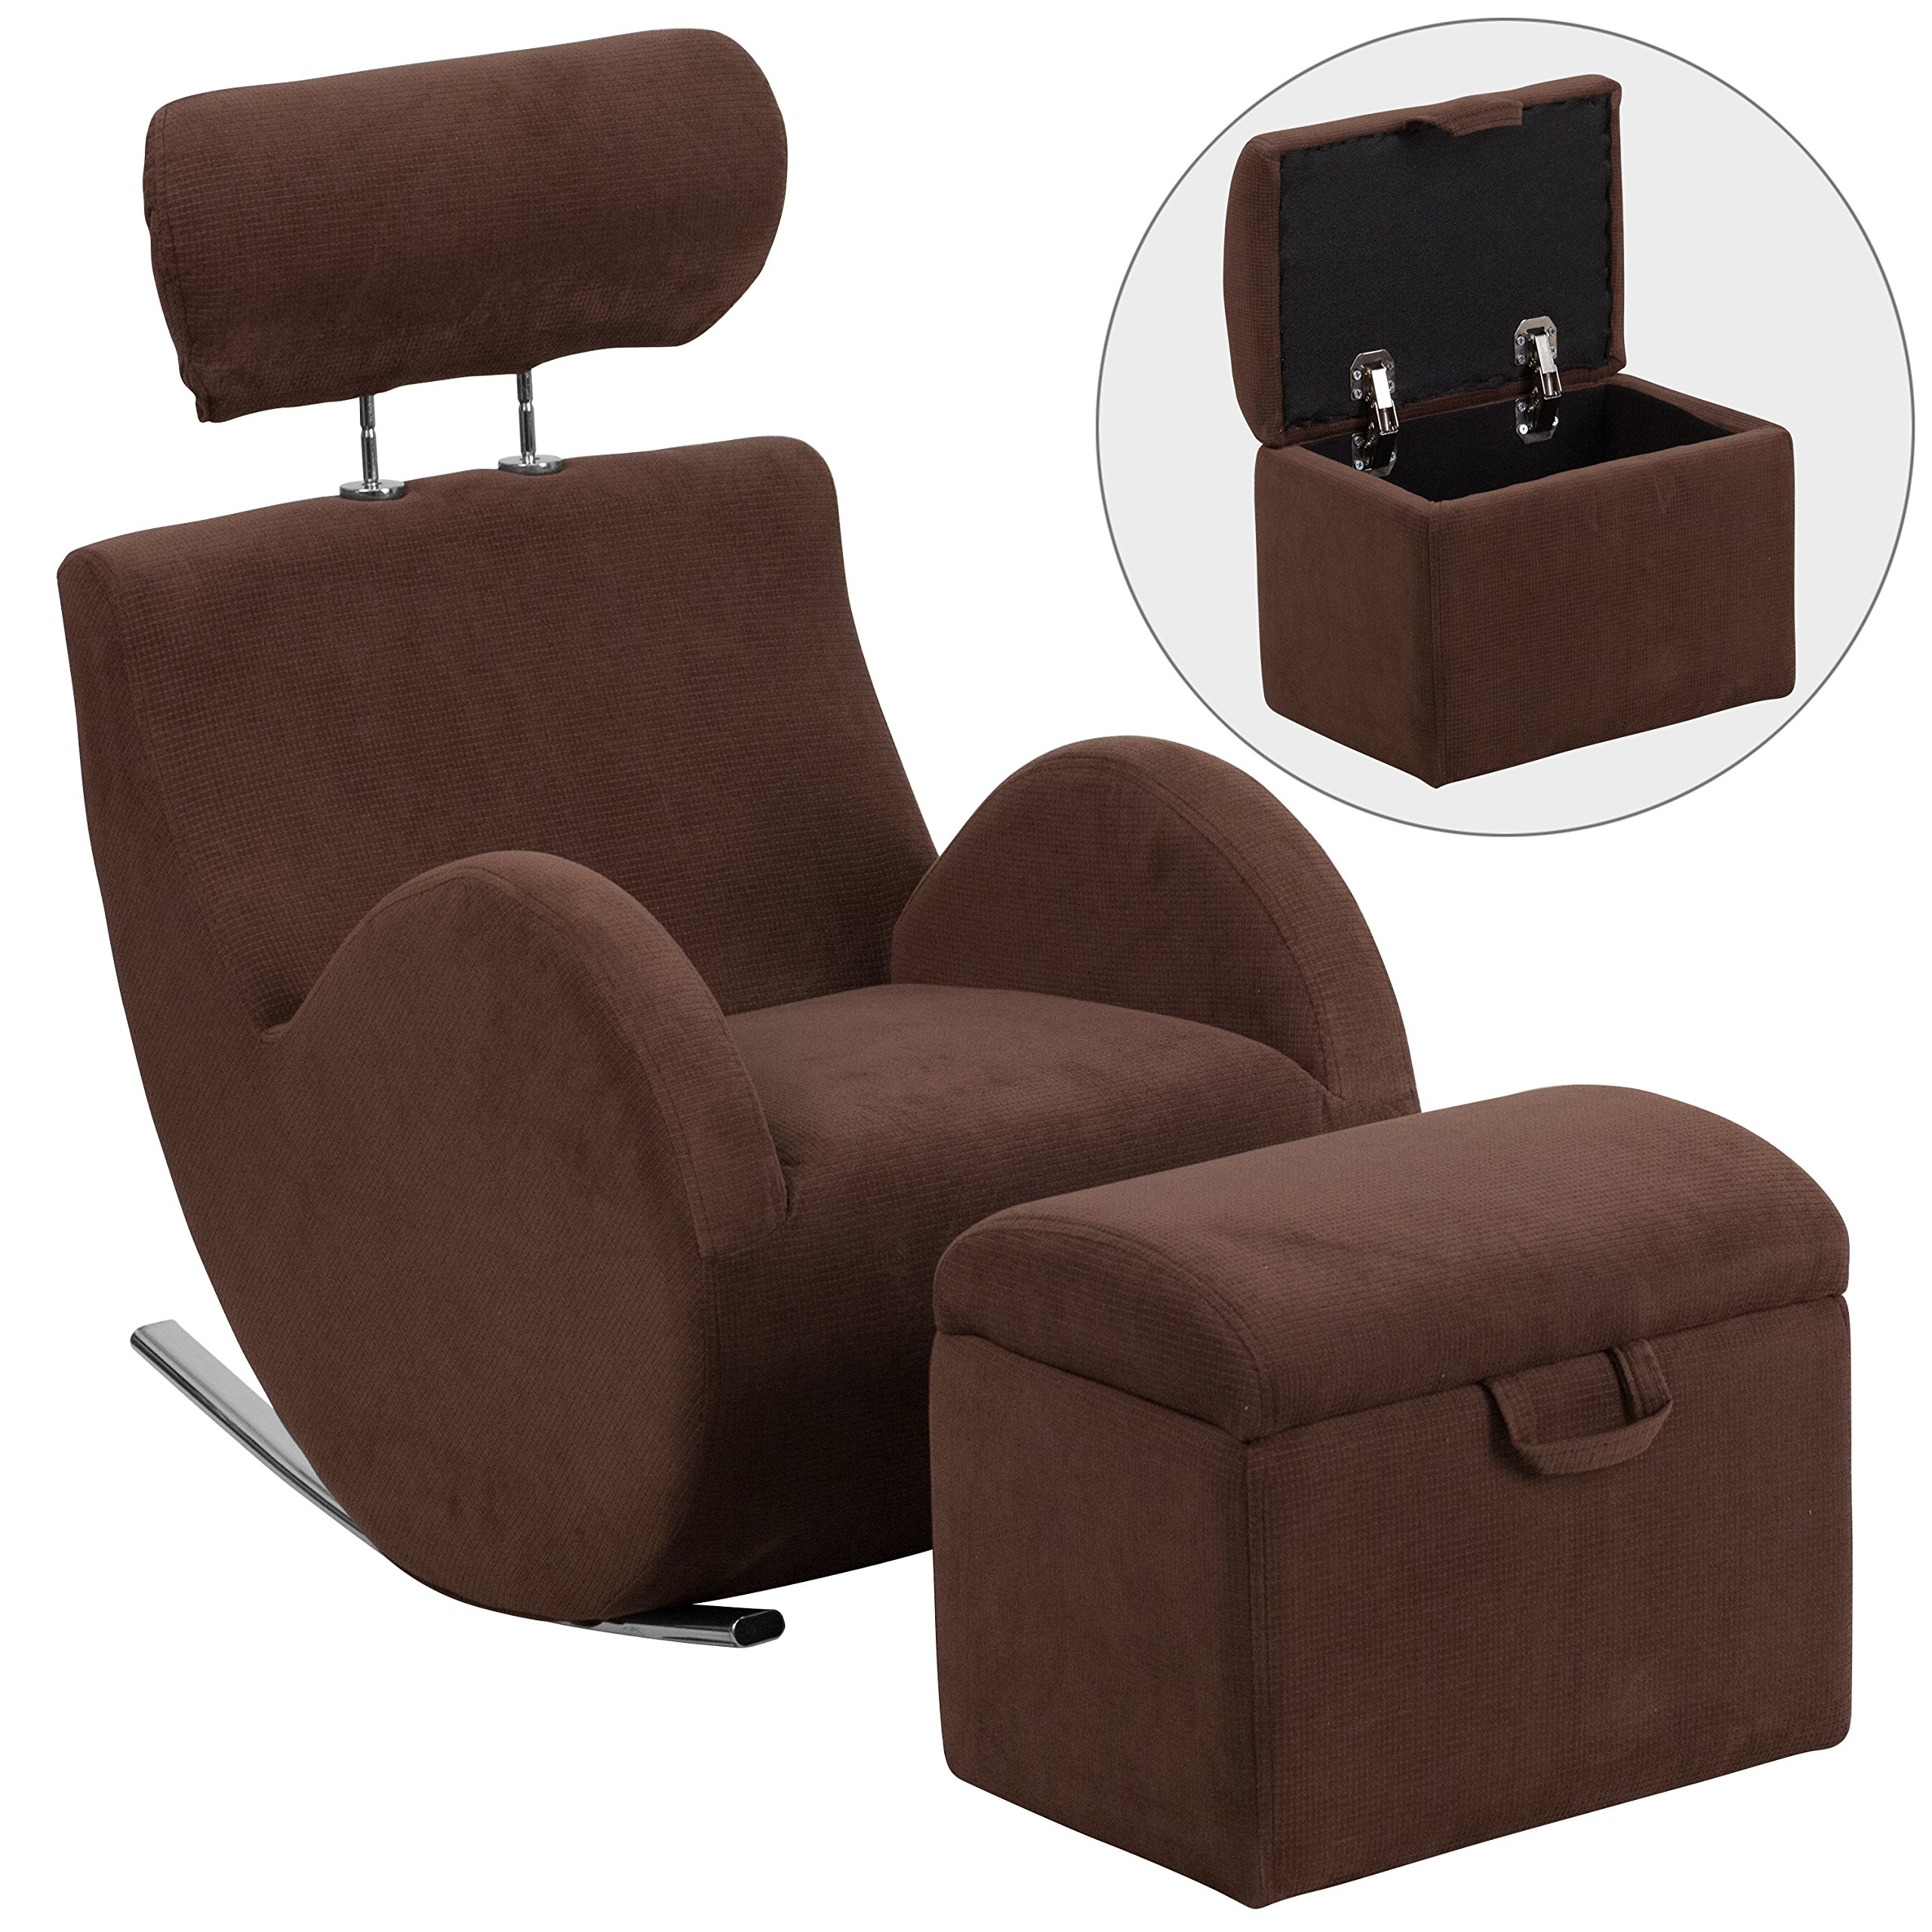 Flash Furniture HERCULES Series Brown Fabric Rocking Chair with Storage Ottoman by Flash Furniture